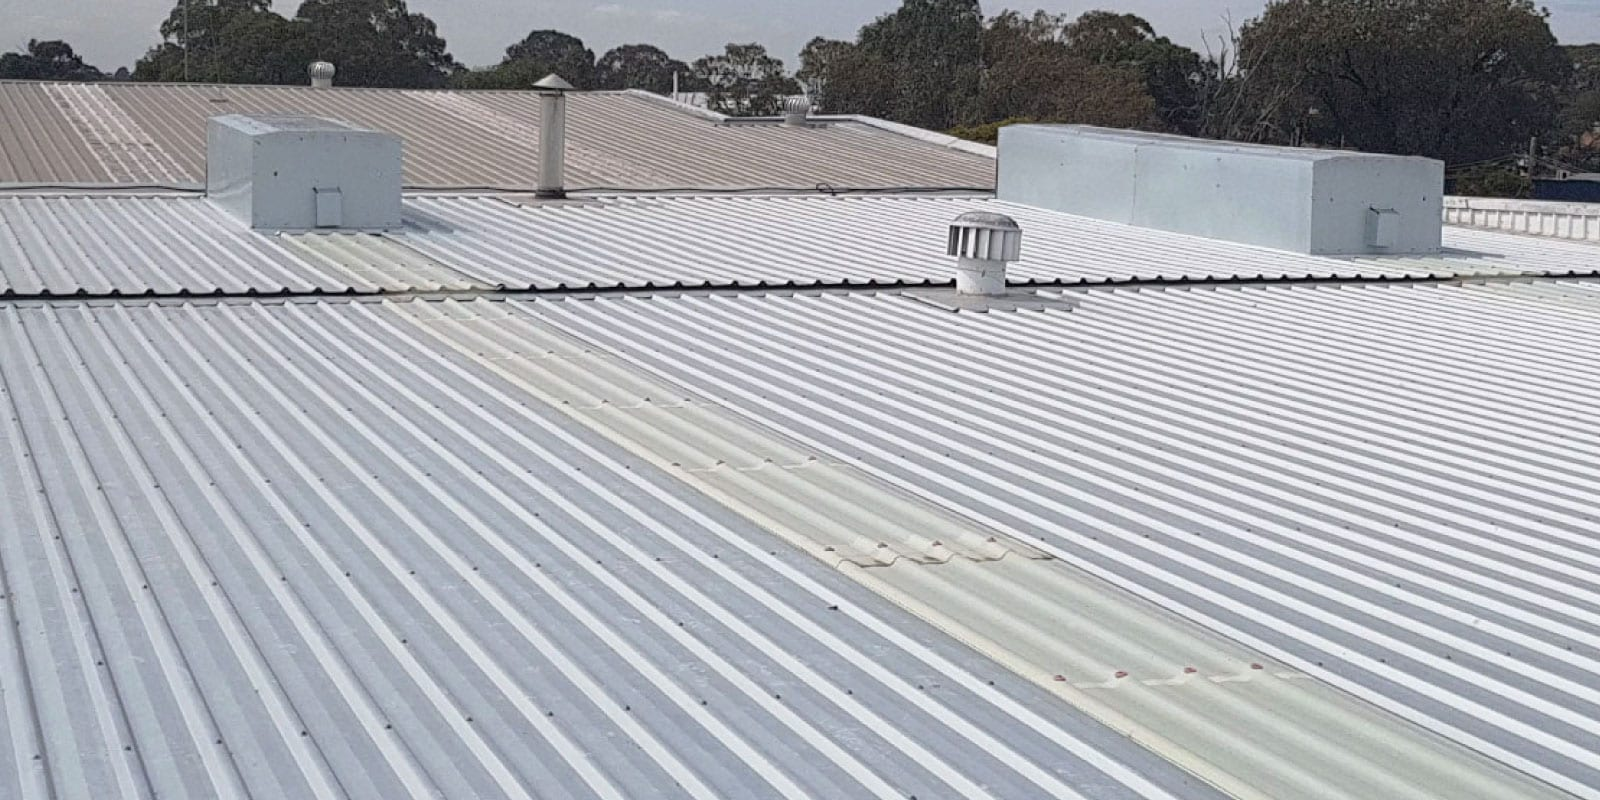 Commercial Roofing Sydney Translucent Panels